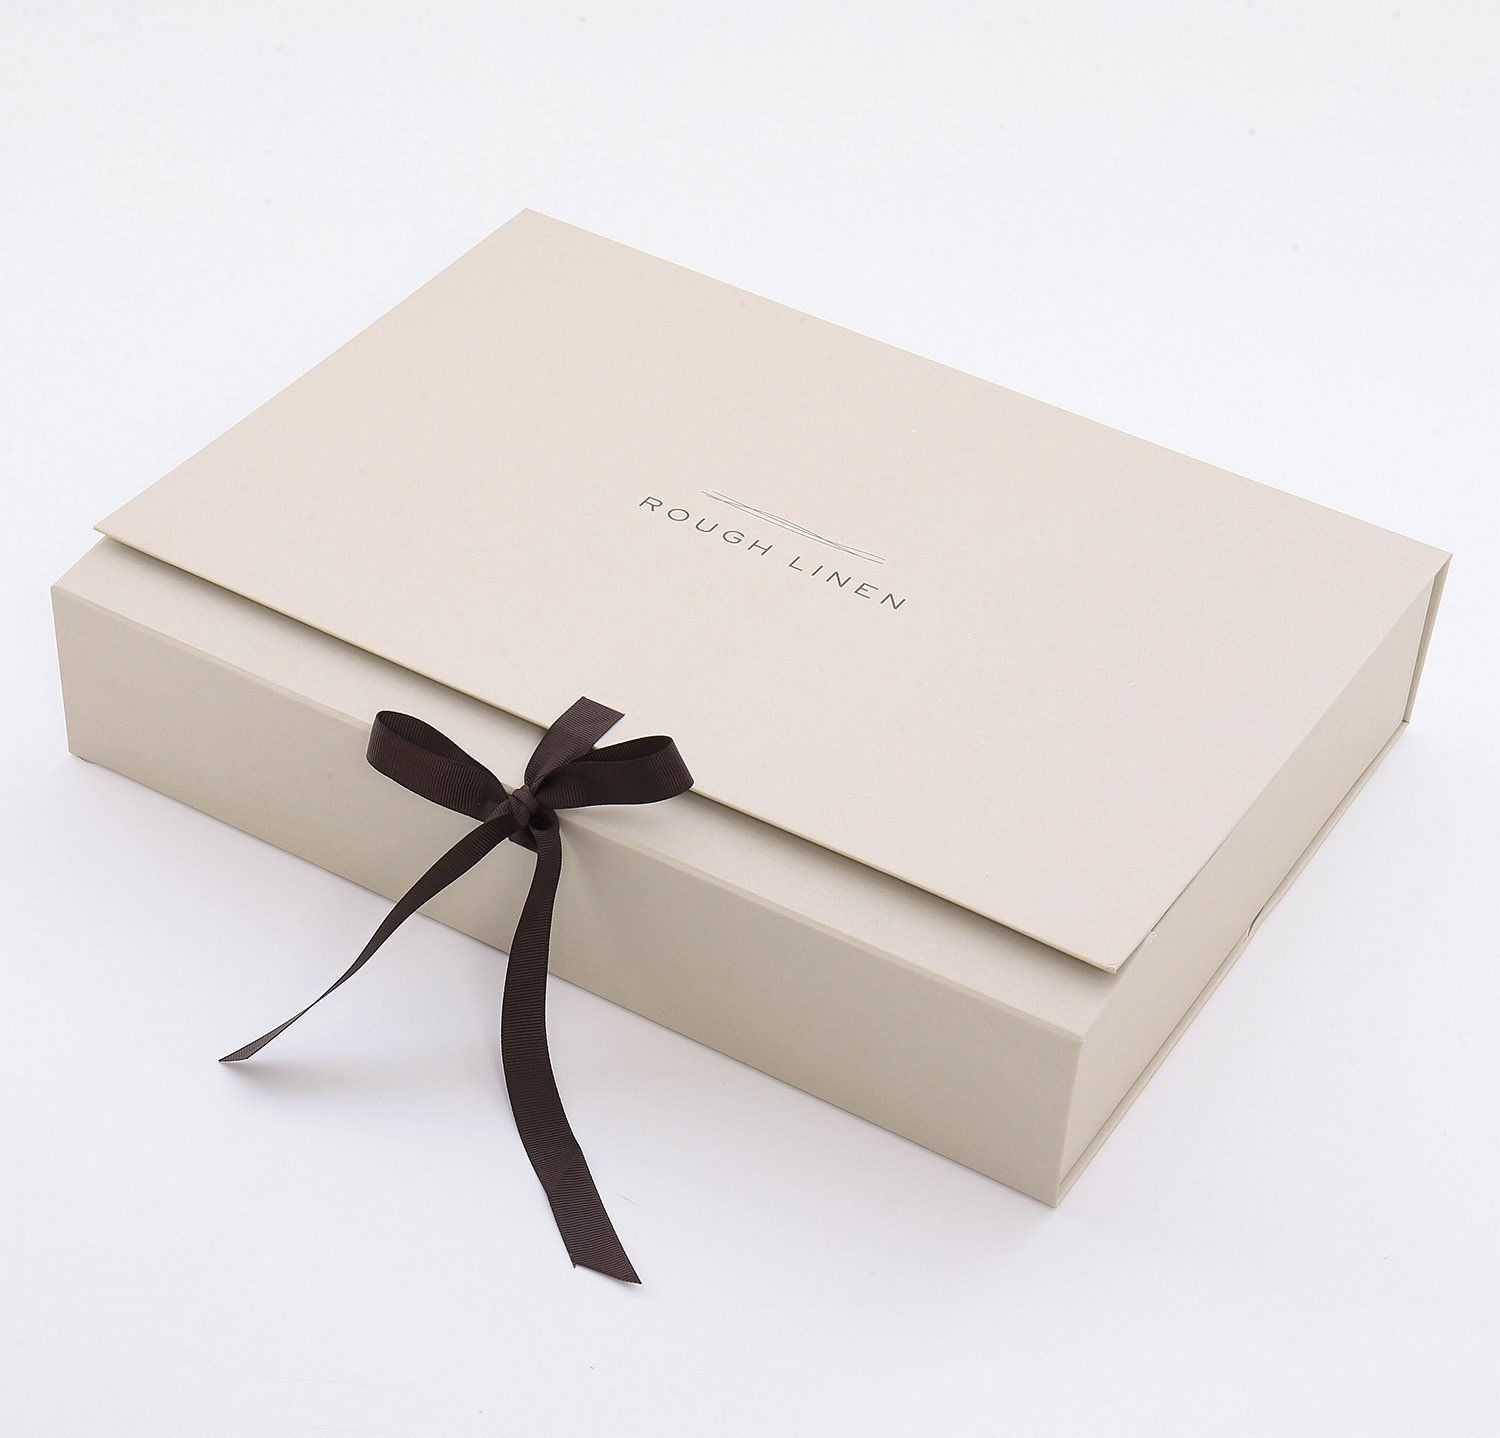 We have always wrapped our linens lovingly in layers of tissue and tied them with ribbon - they deserve nothing less! And now we are going the extra mile with our new beautiful Rough Linen gift boxes, for times you want the presentation to be extra special. These boxes are good enough to keep.Two sizes, small and medium - we can help you decide which size you need. Product Information Dimensions: Small: 8.5